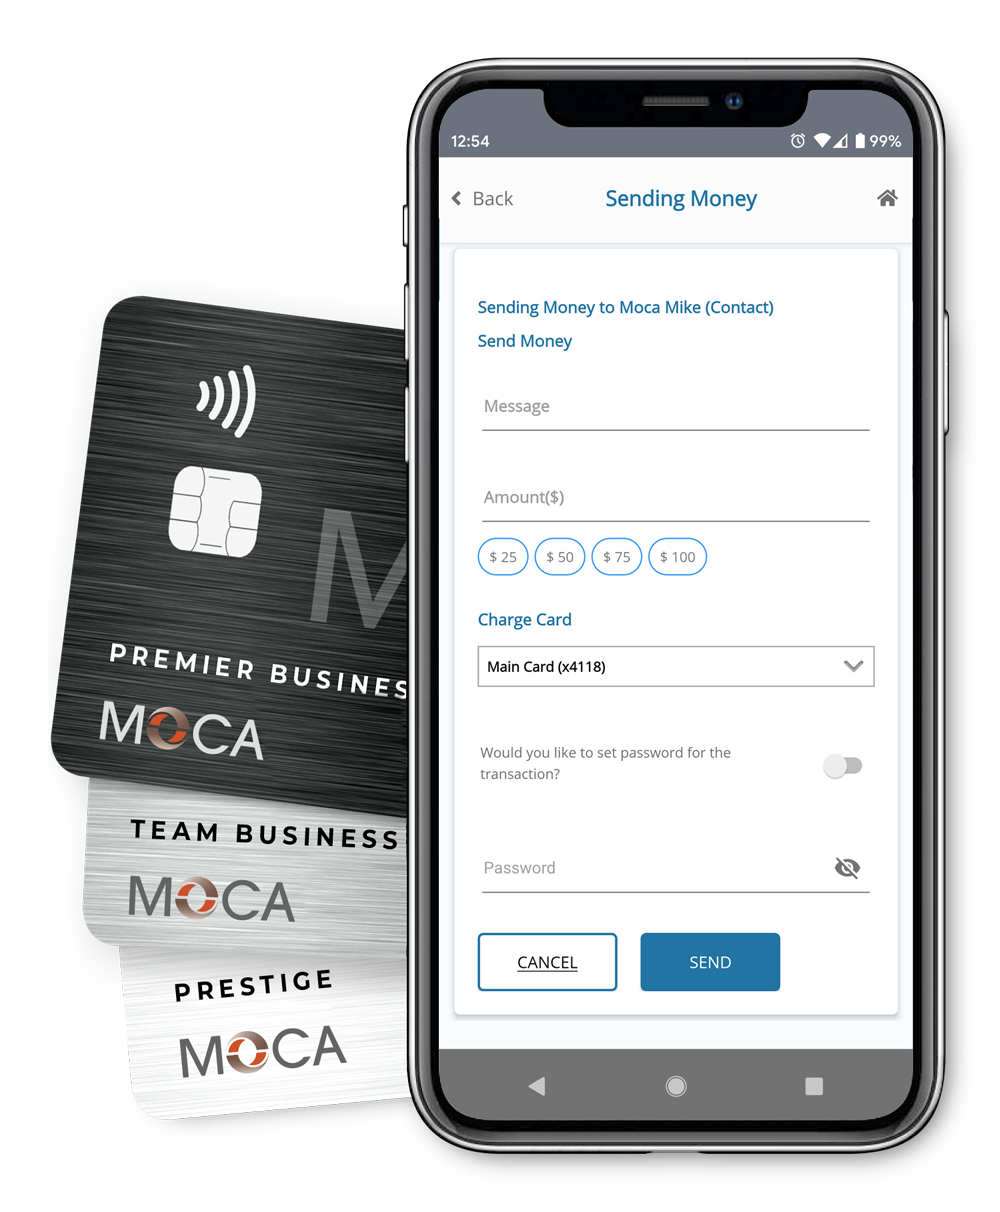 Sending Money with the MOCA app for business